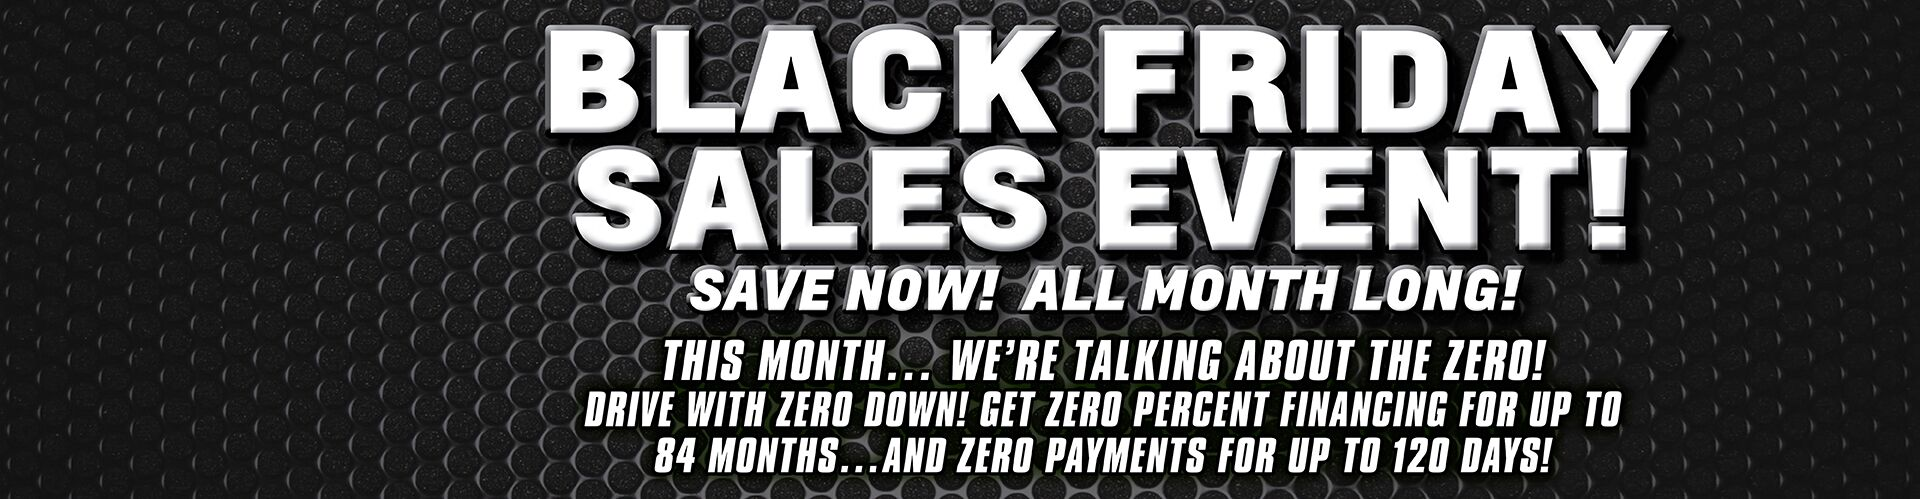 The Black Friday Sales Event!